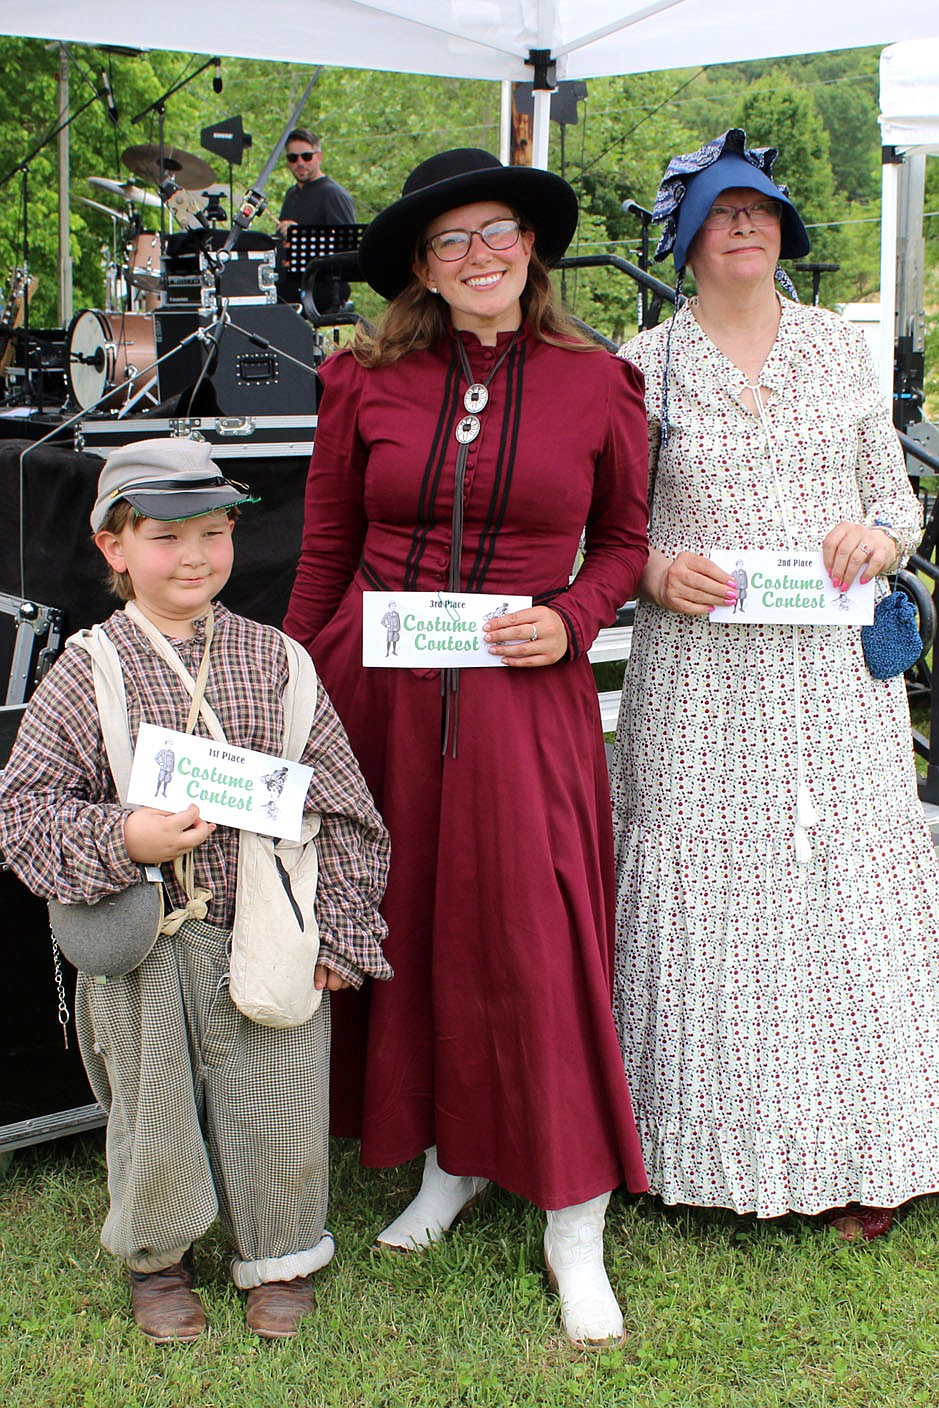 MEGAN DAVIS/MCDONALD COUNTY PRESS (L to R:) Inman Walker, Danni Stewart and Mary Mueller took home award money and bragging rights after winning the Old Timer's Day costume contest.